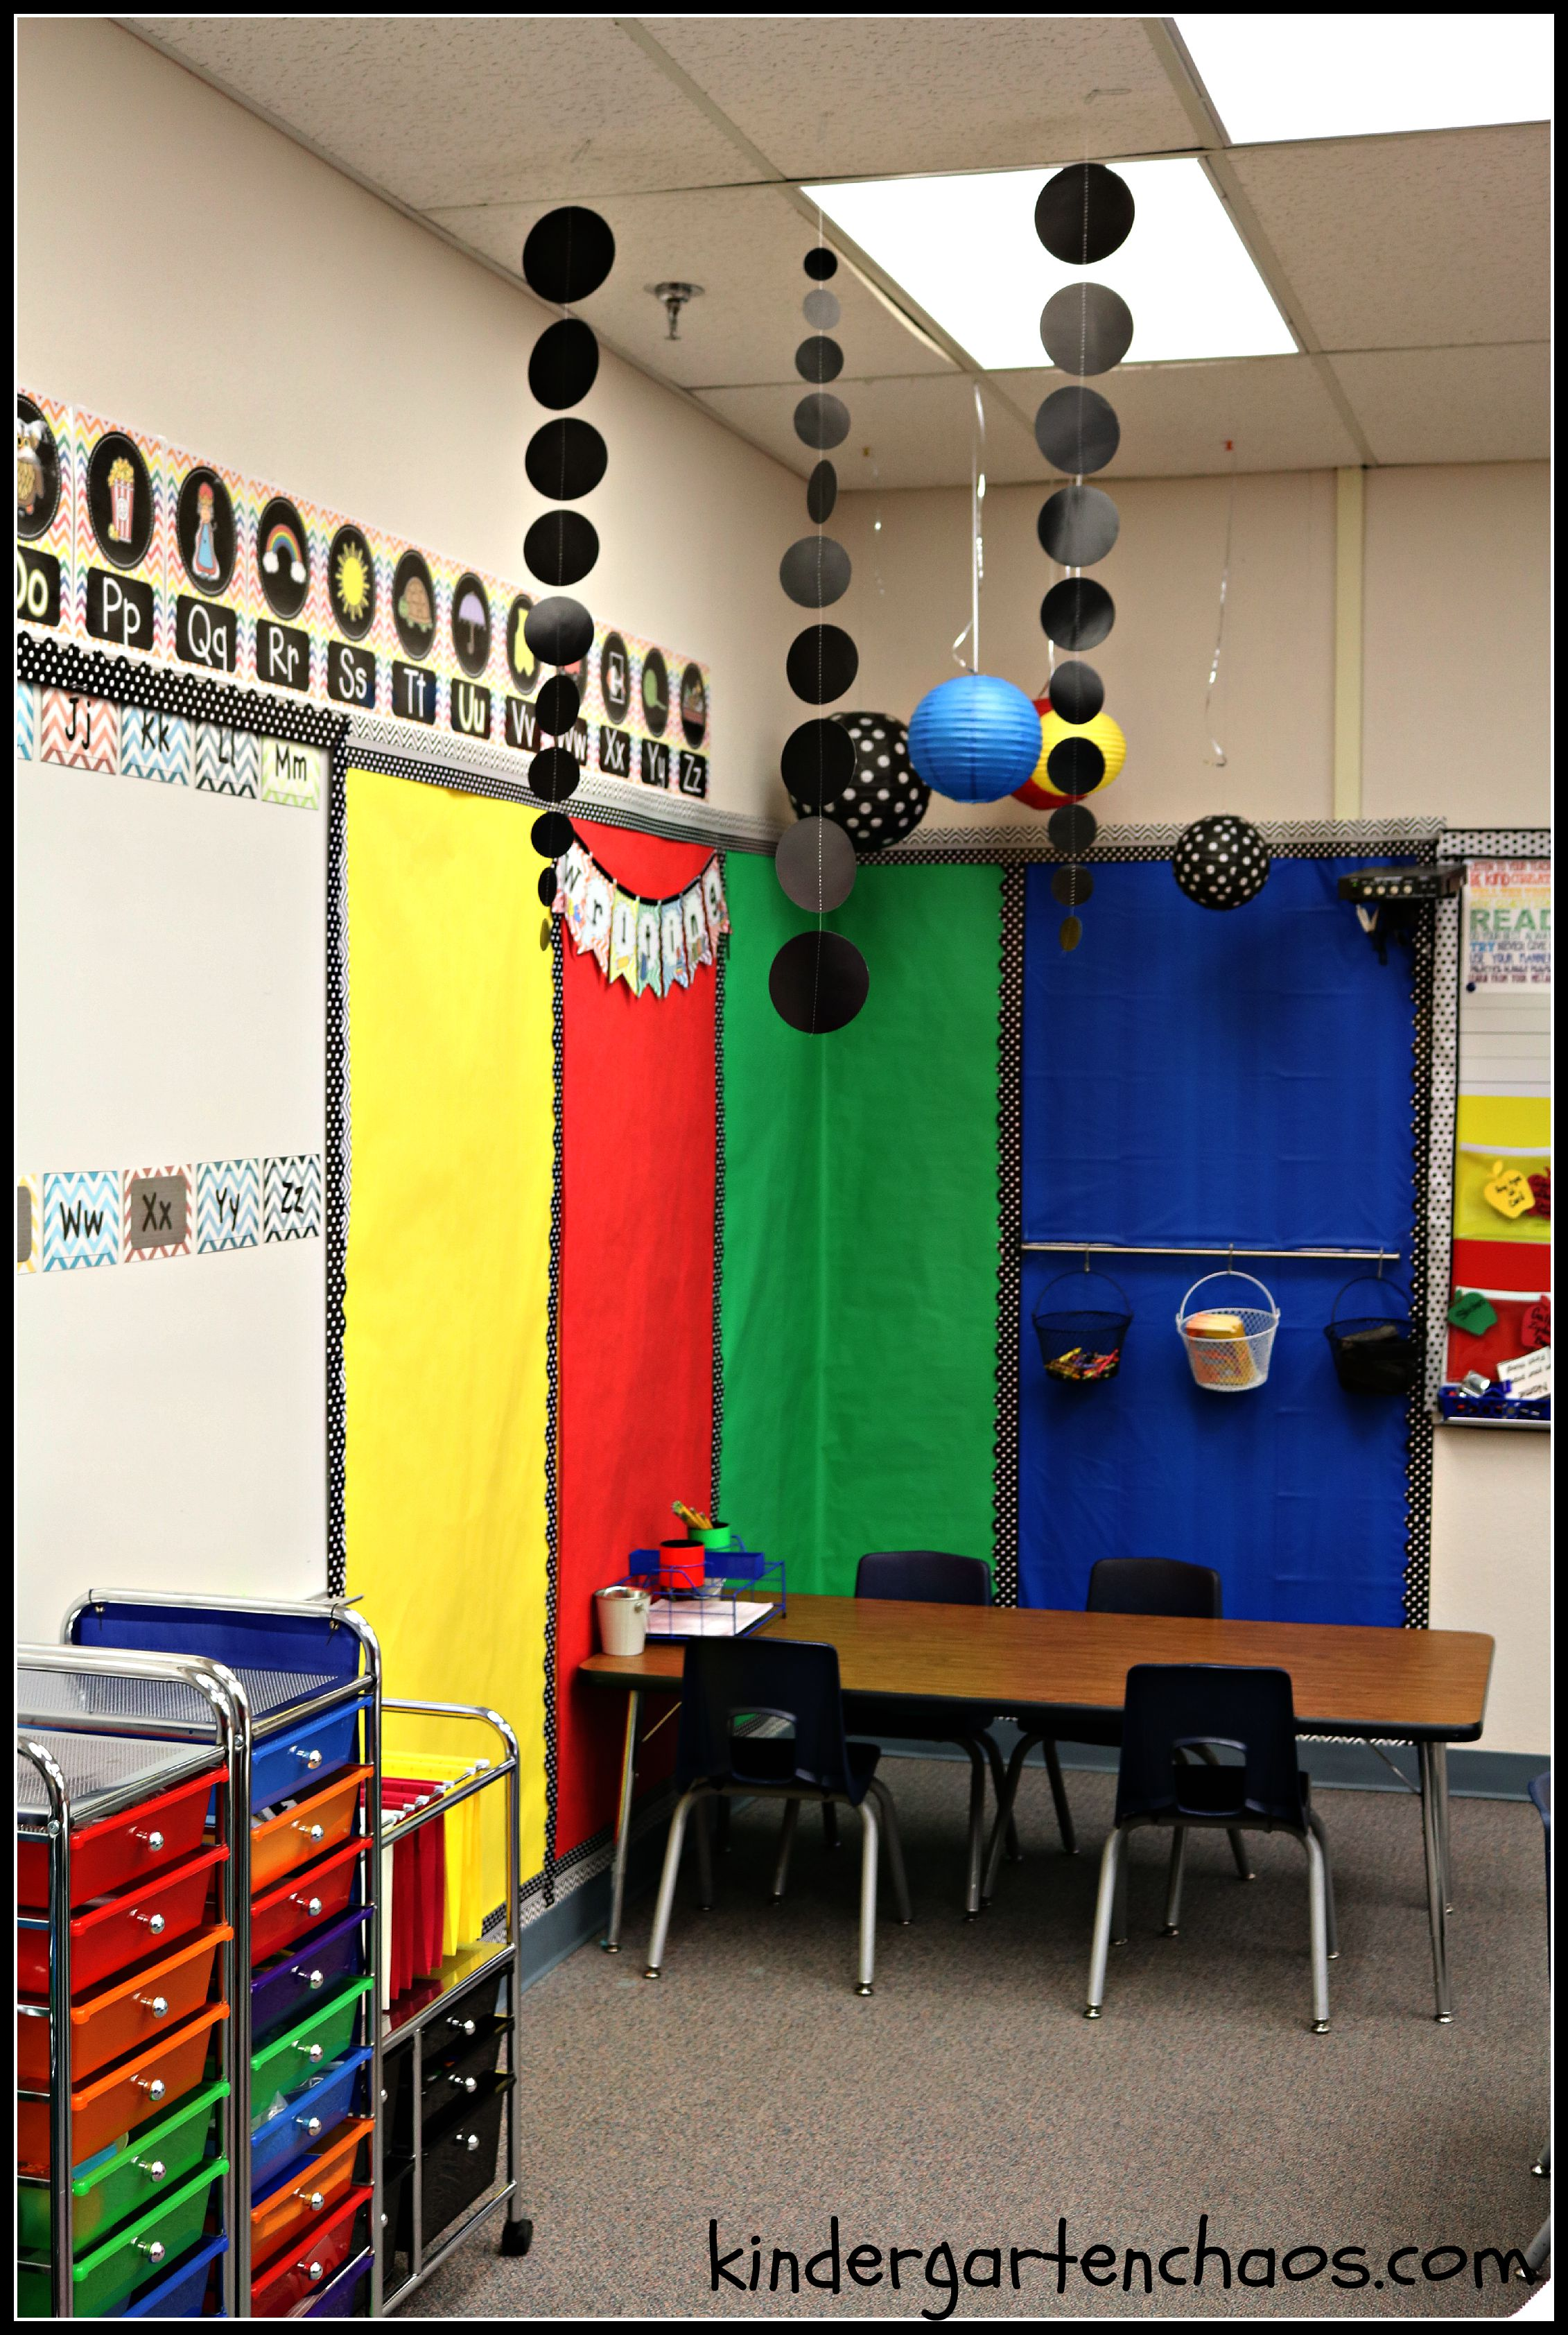 SaveEnlarge · Fall Bulletin Board Ideas For Preschool Classroom & Classroom Decorating Ideas For Kindergarten - Elitflat